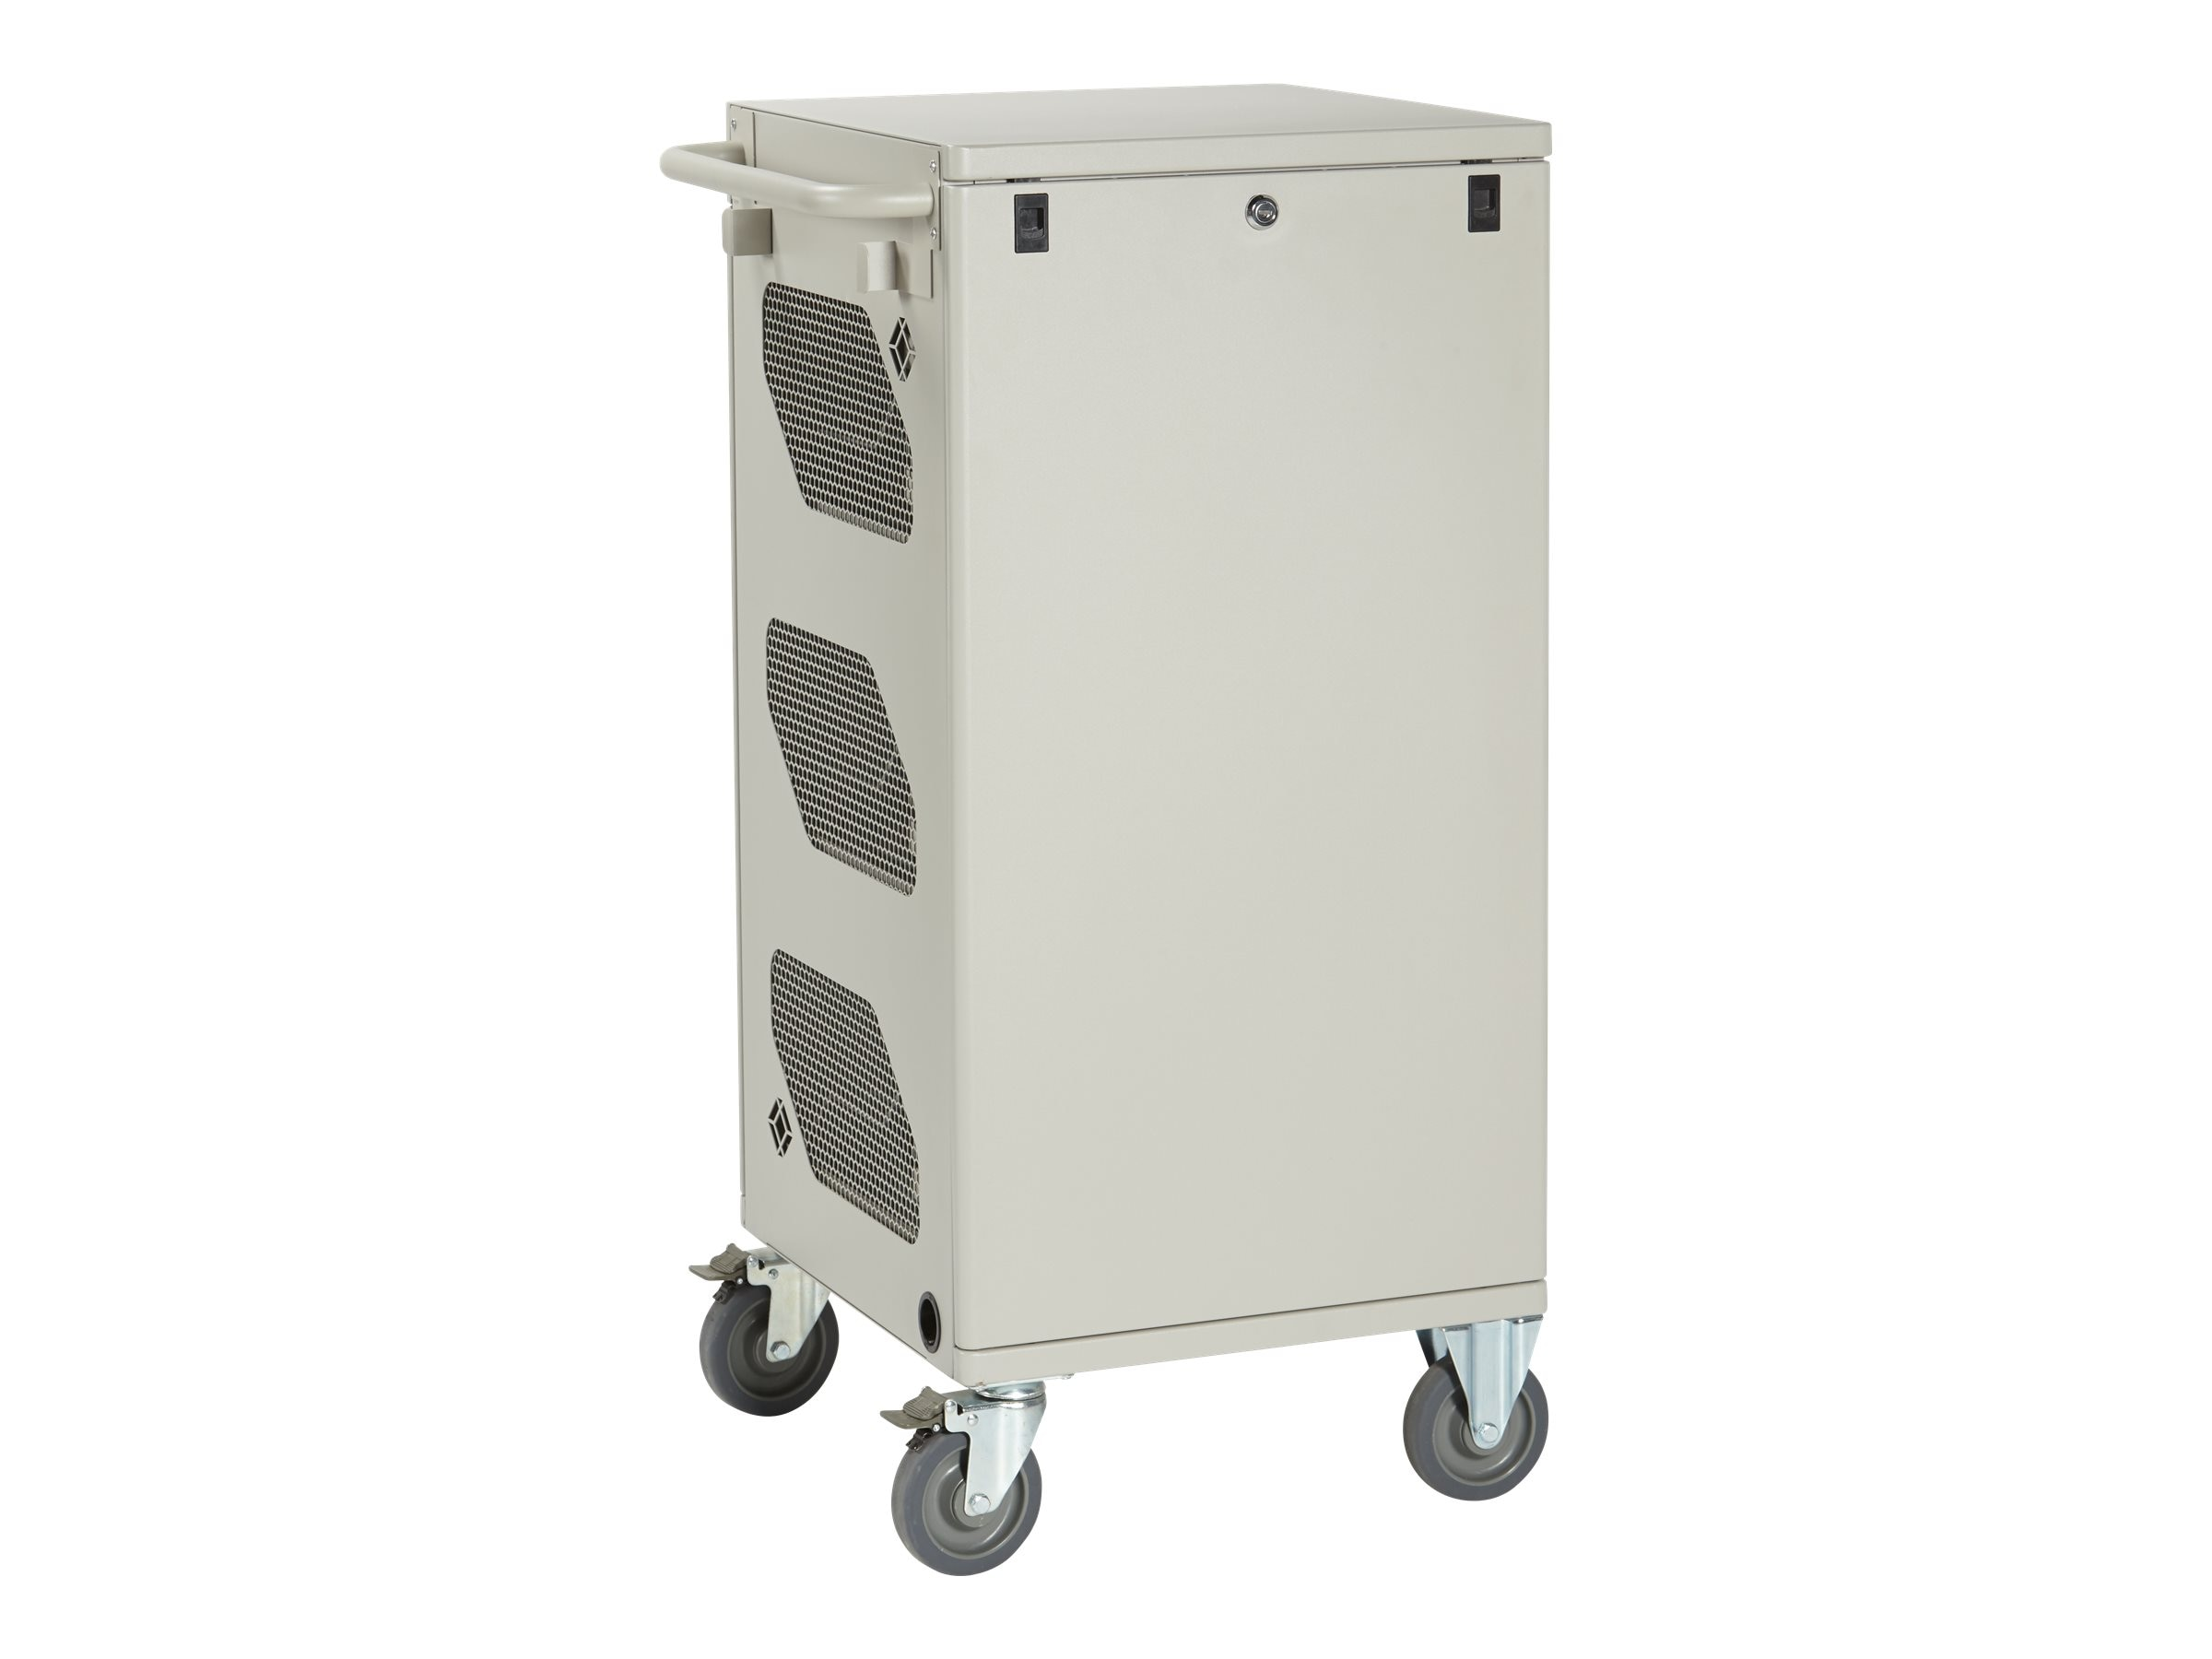 Black Box 30-Device Standard Cart - Basic Distribution Charging, Hinged Door, Hasp Lock, Front Cable Manageme, LCC30H-AC-HASP-R2